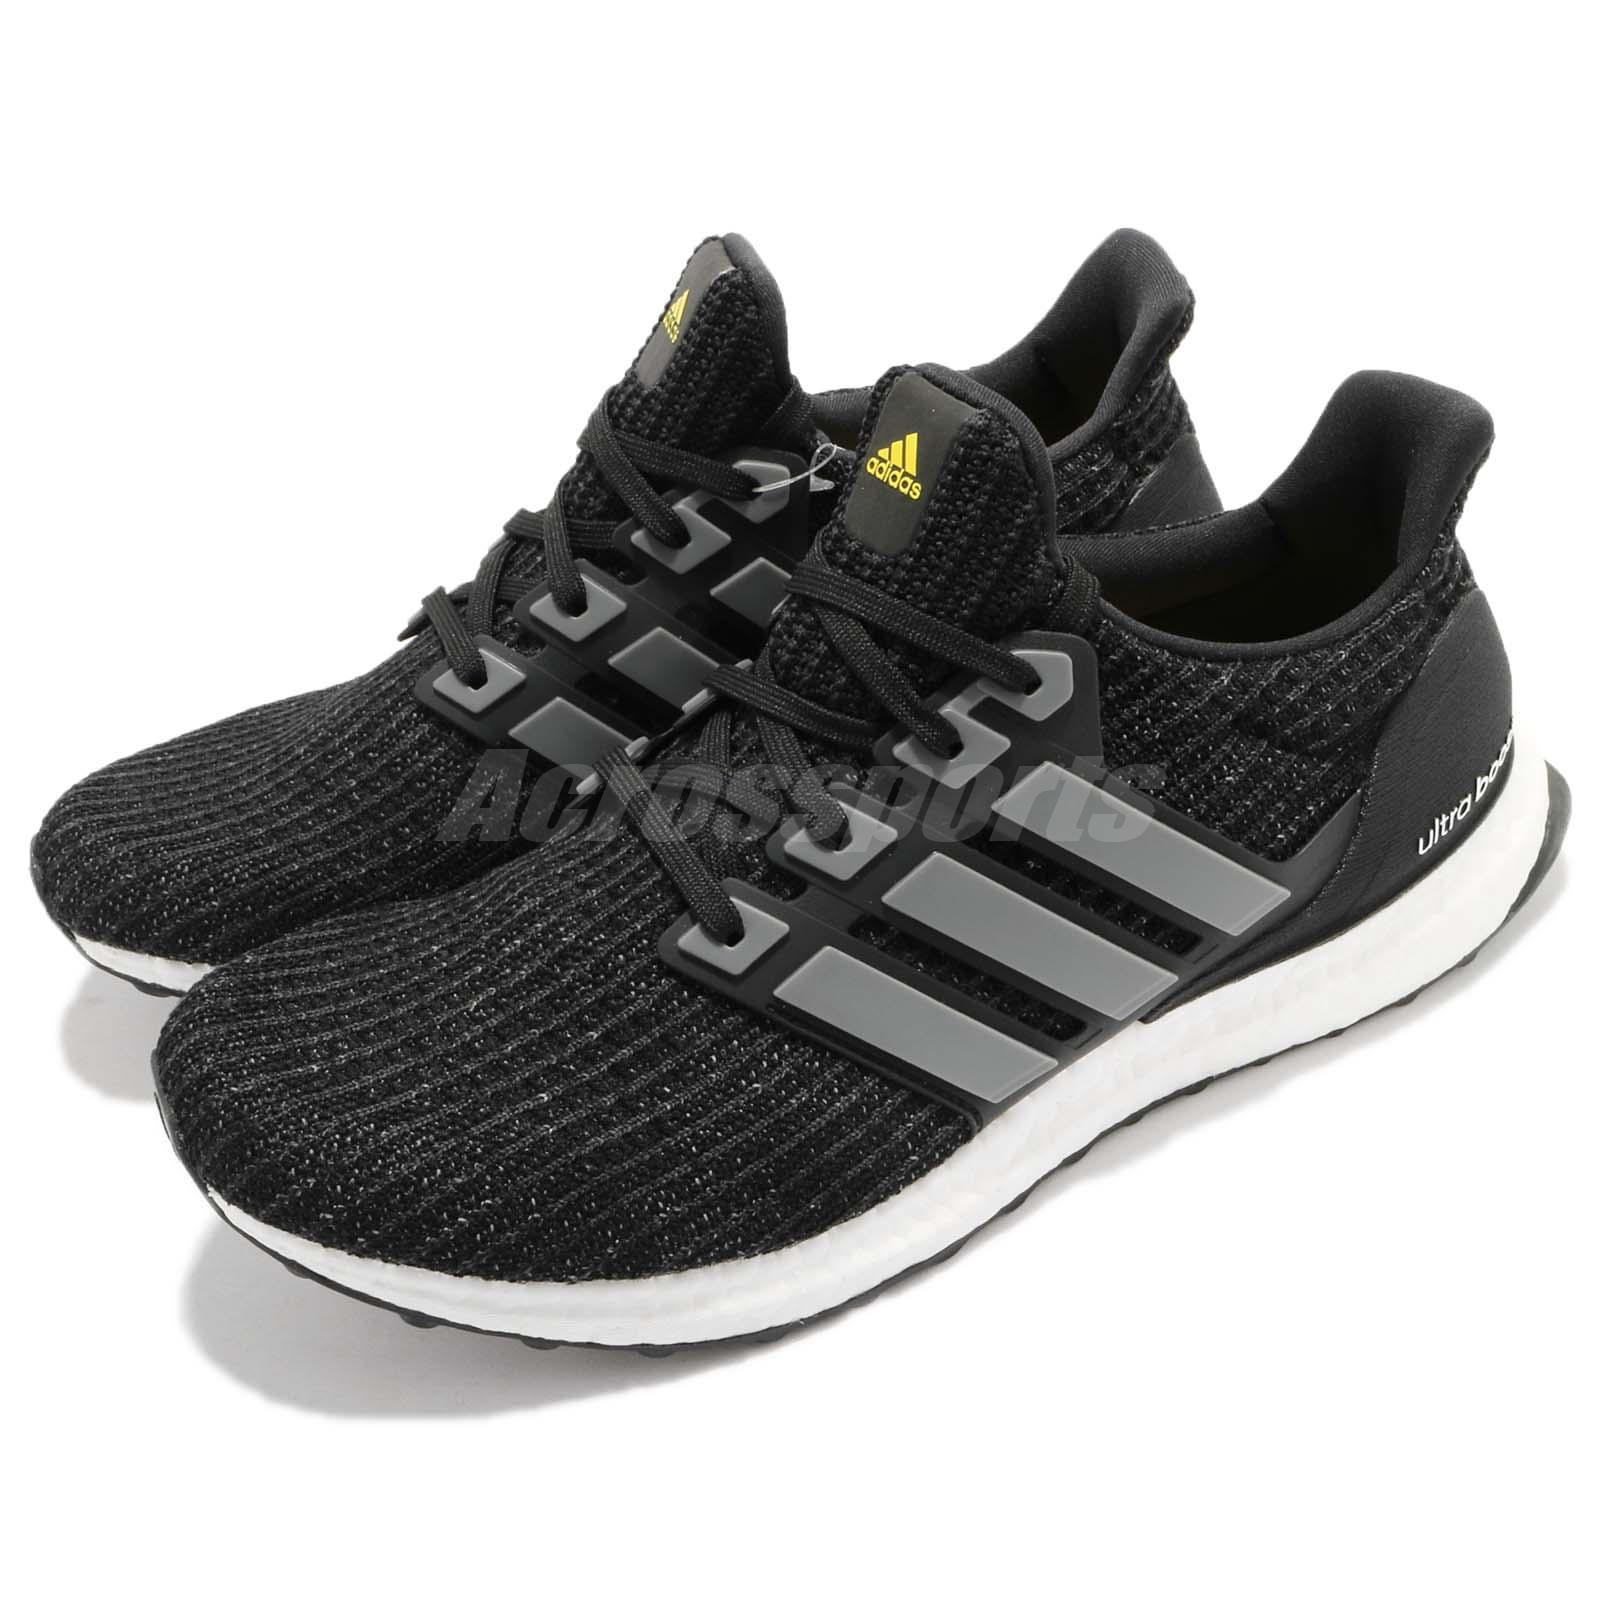 adidas UltraBOOST LTD 4.0 5th Anniversary Black White Reflective Men Shoe BB6220